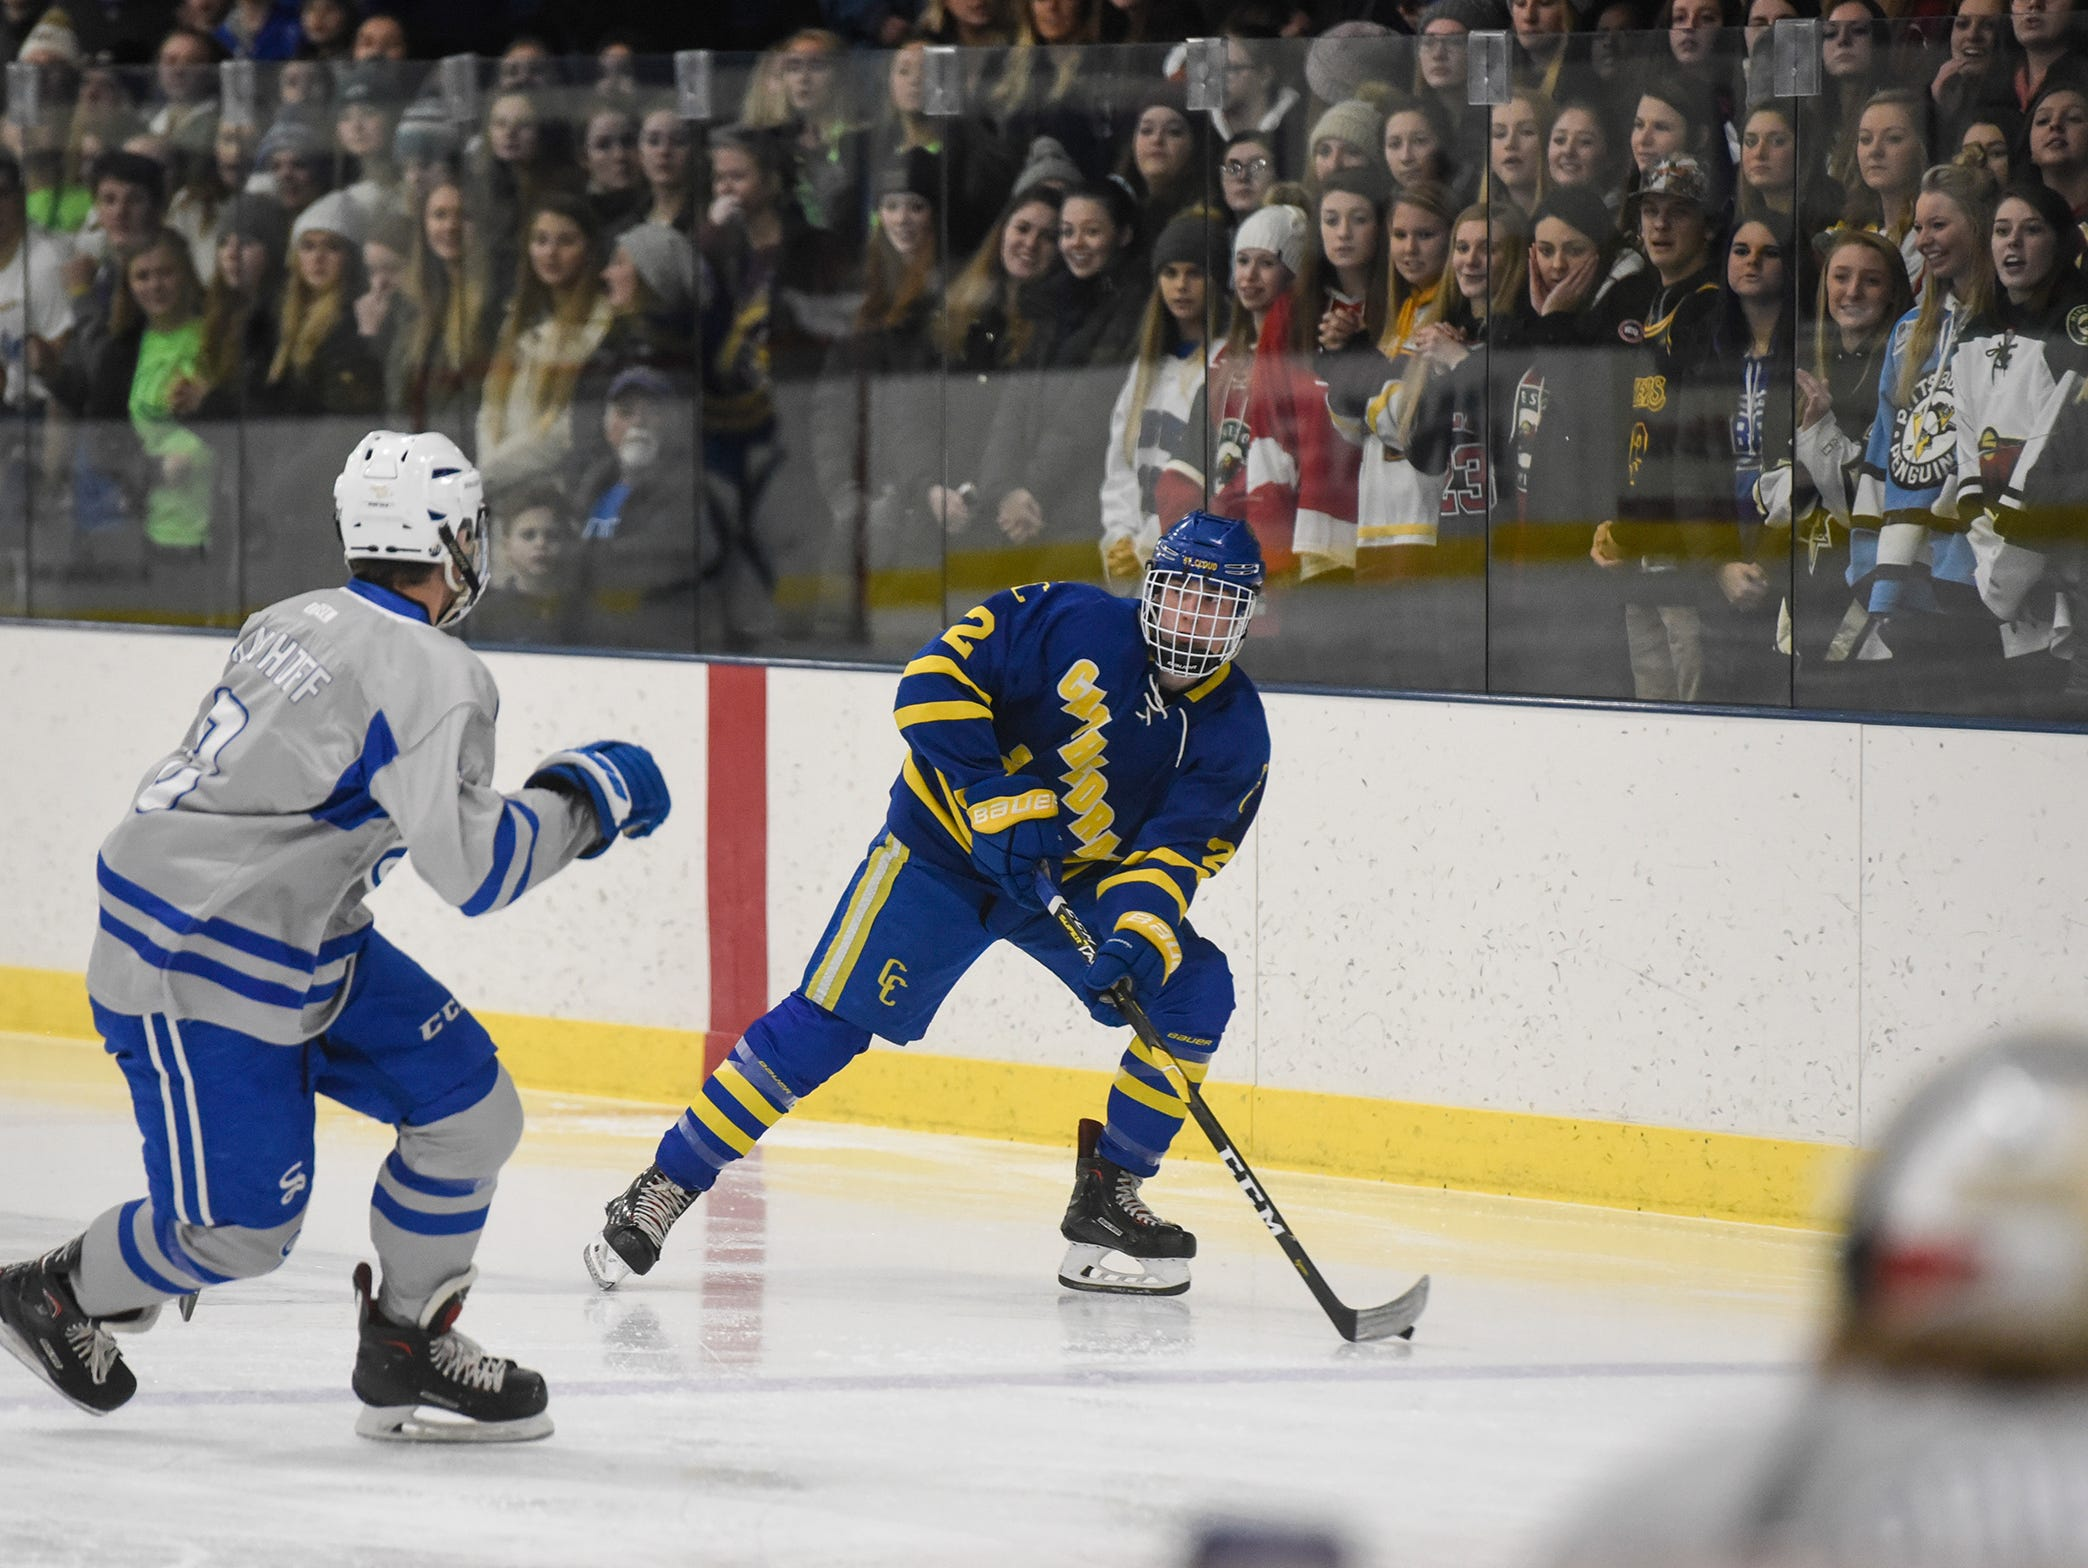 Players take the ice for the Thursday, Jan. 10, game between Sartell adn Cathedral at Bernicks Arena in Sartell.